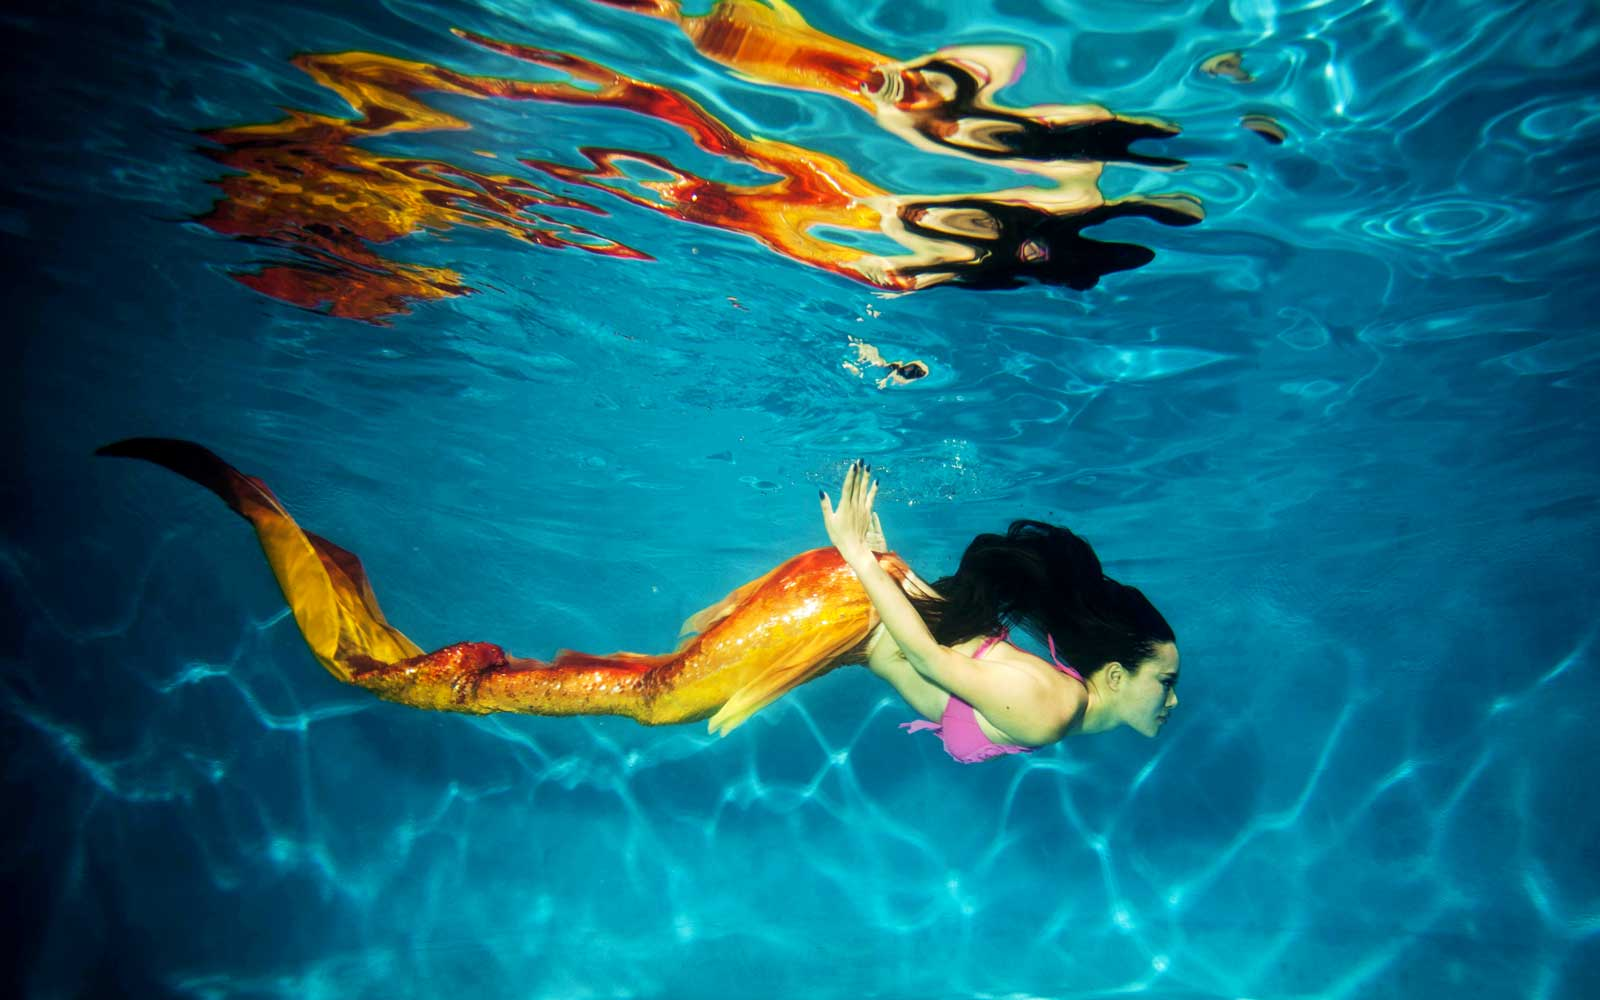 5 Things You Probably Didn't Know About Being a Professional Mermaid